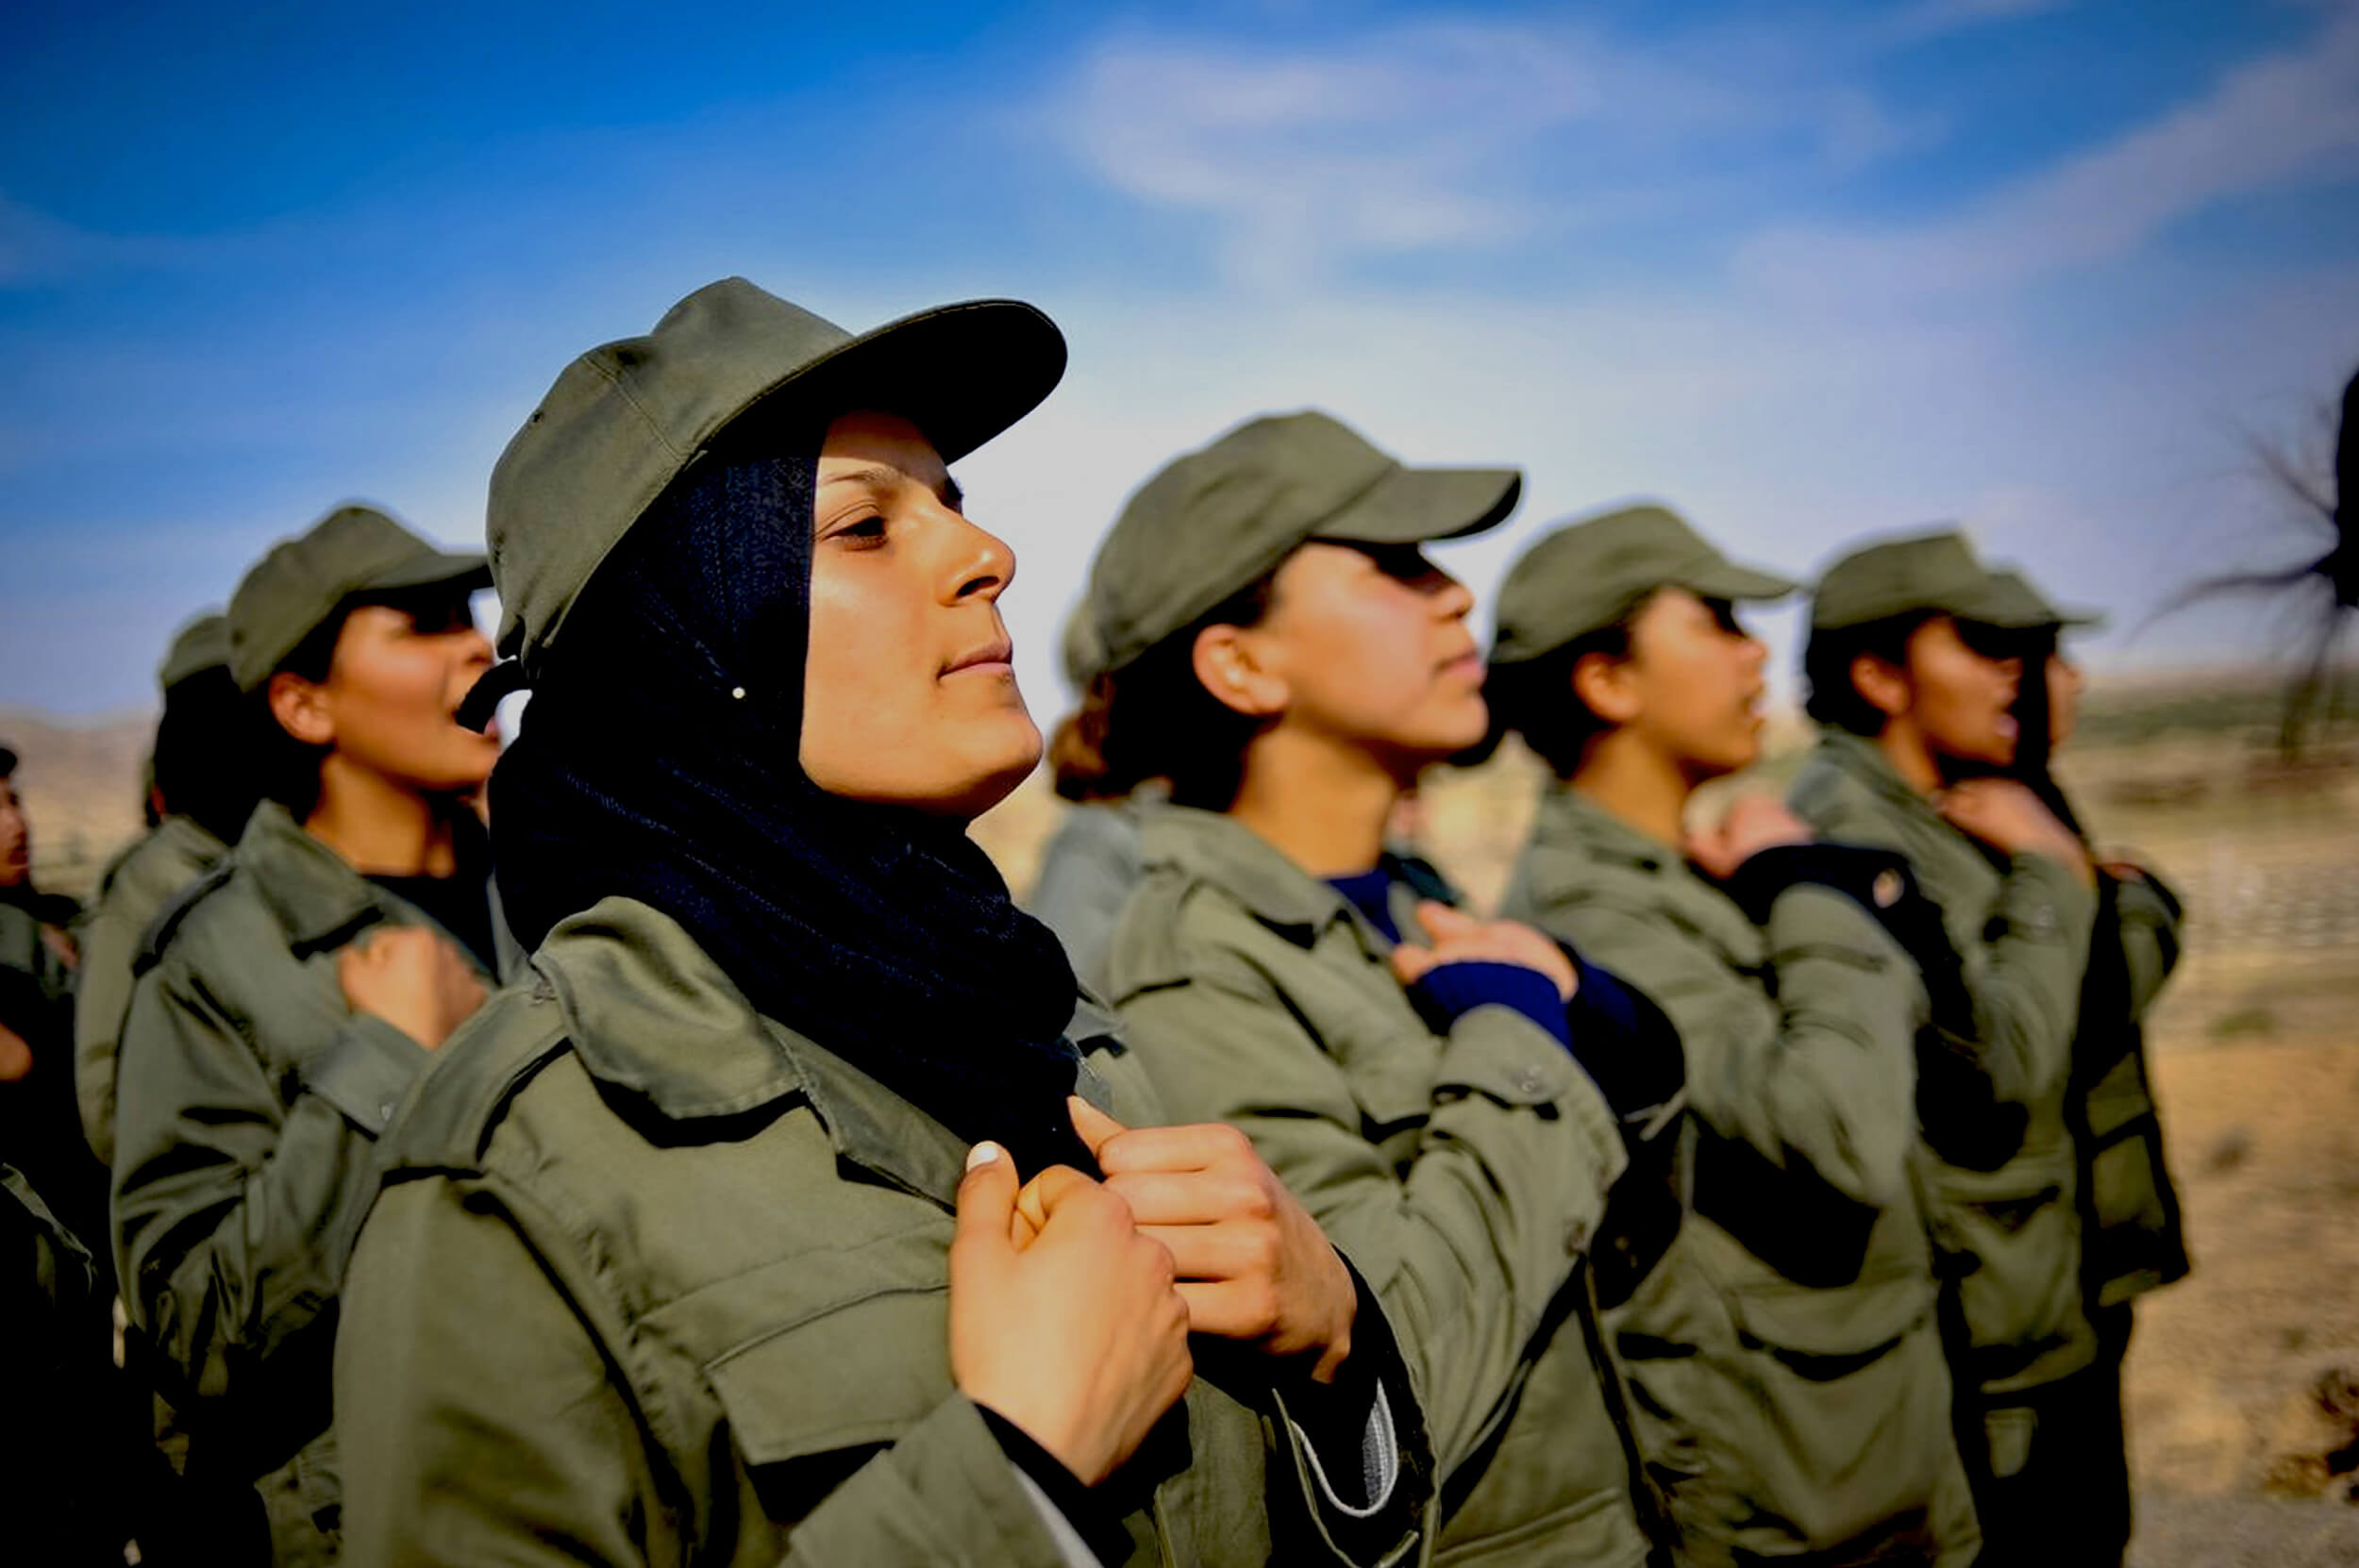 Promoting gender equality for inclusive security